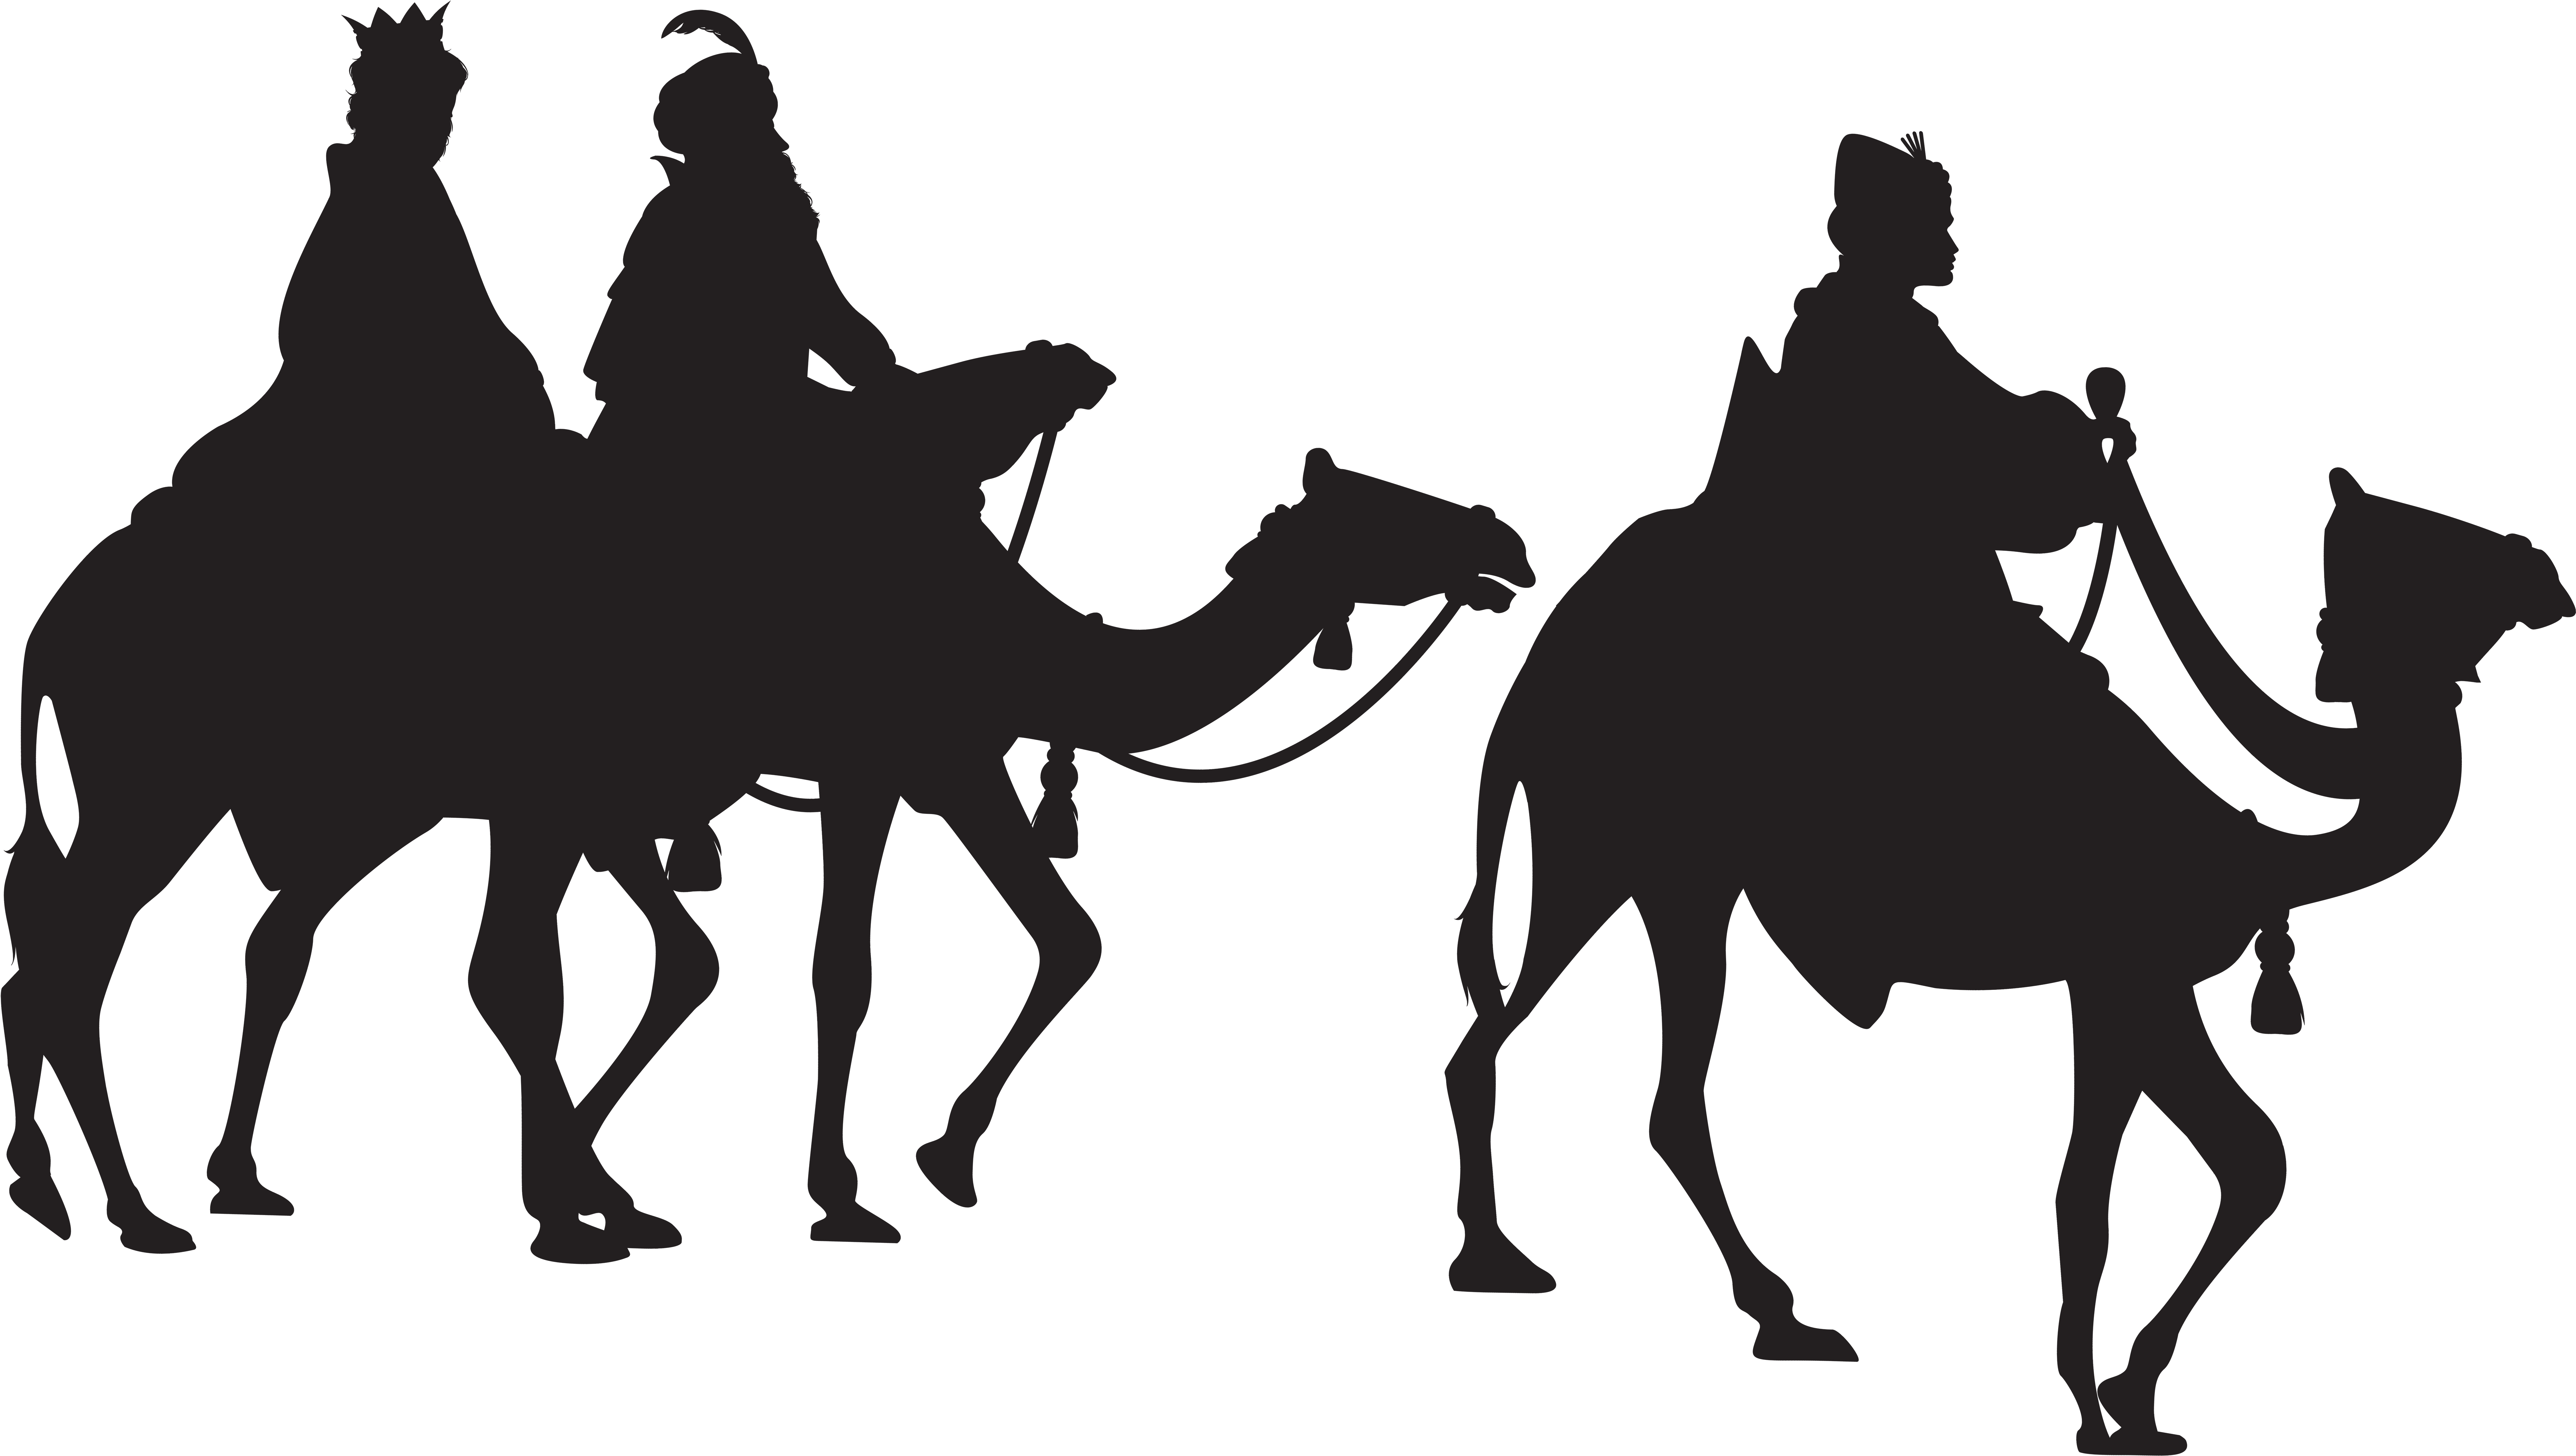 3 clipart kings. Three silhouette png clip